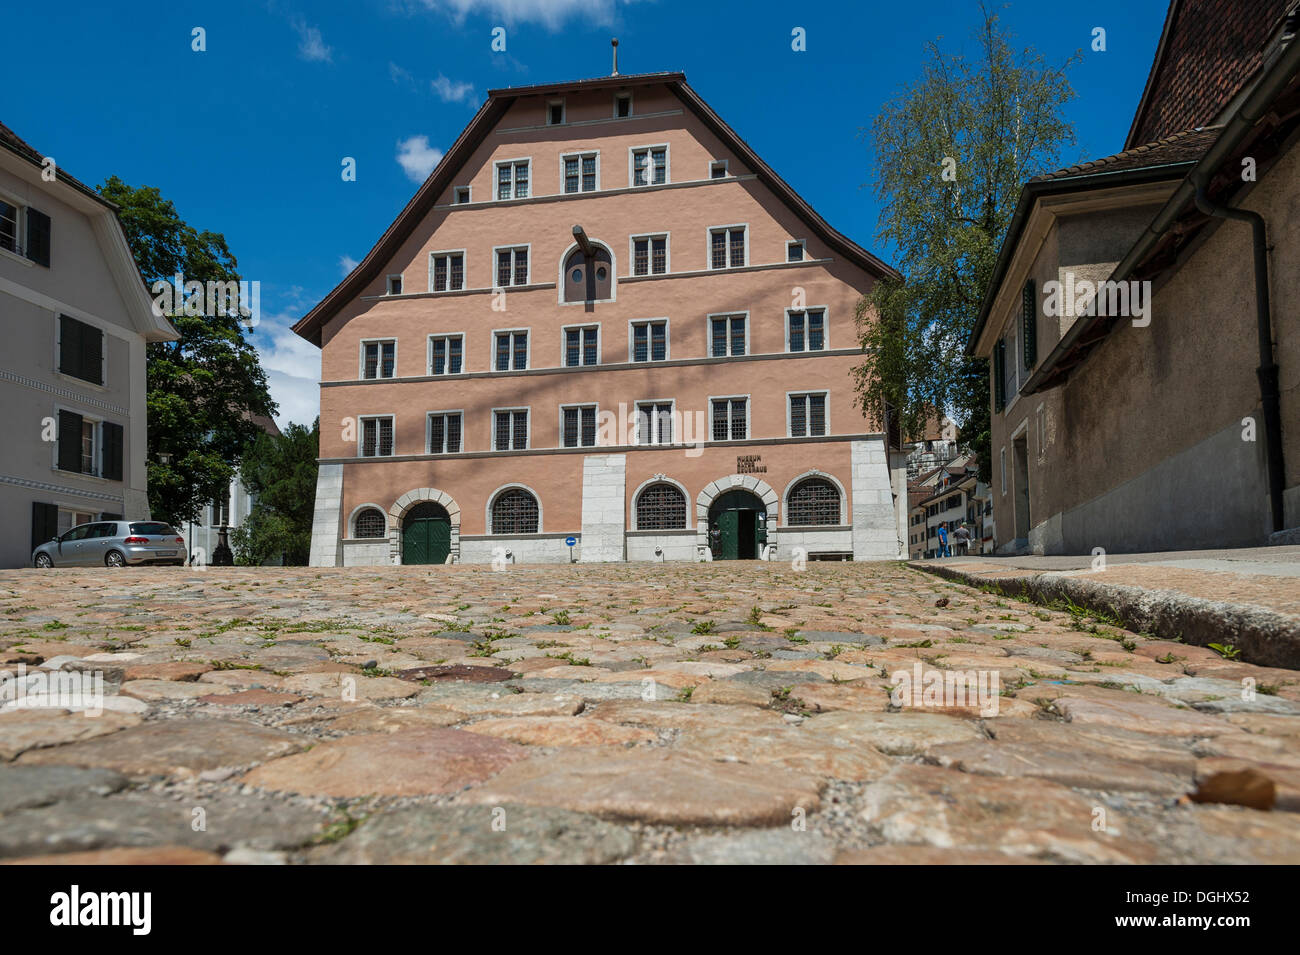 Altes Zeughaus Museum, historic arsenal, Solothurn, Solothurn, Canton of Solothurn, Switzerland - Stock Image